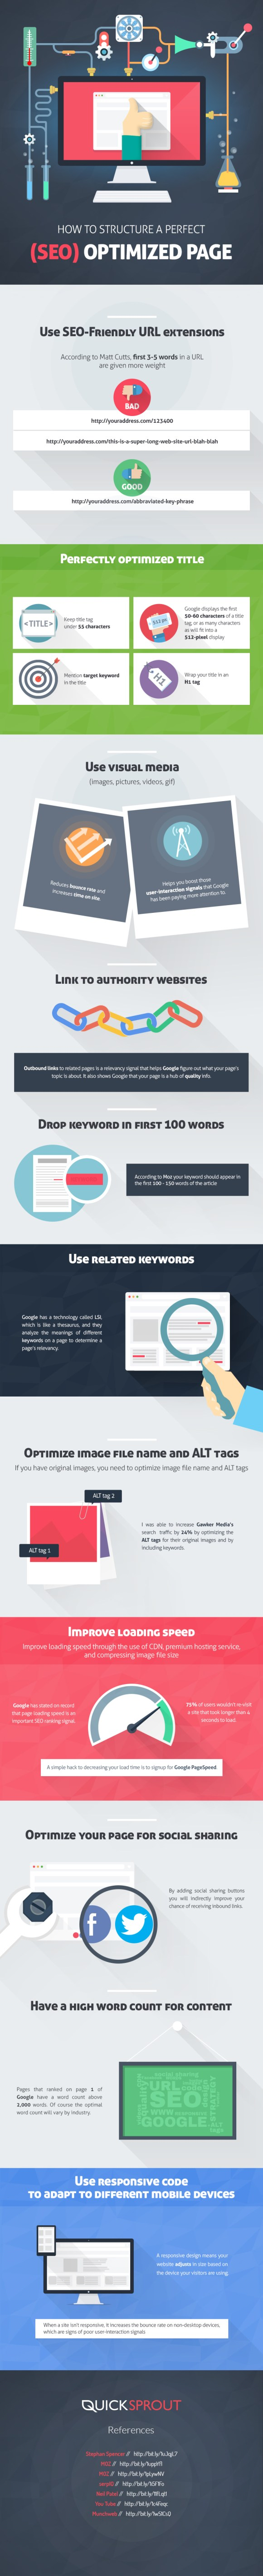 The-Perfect-On-Page-SEO-Checklist-for-2016-Infographic-image